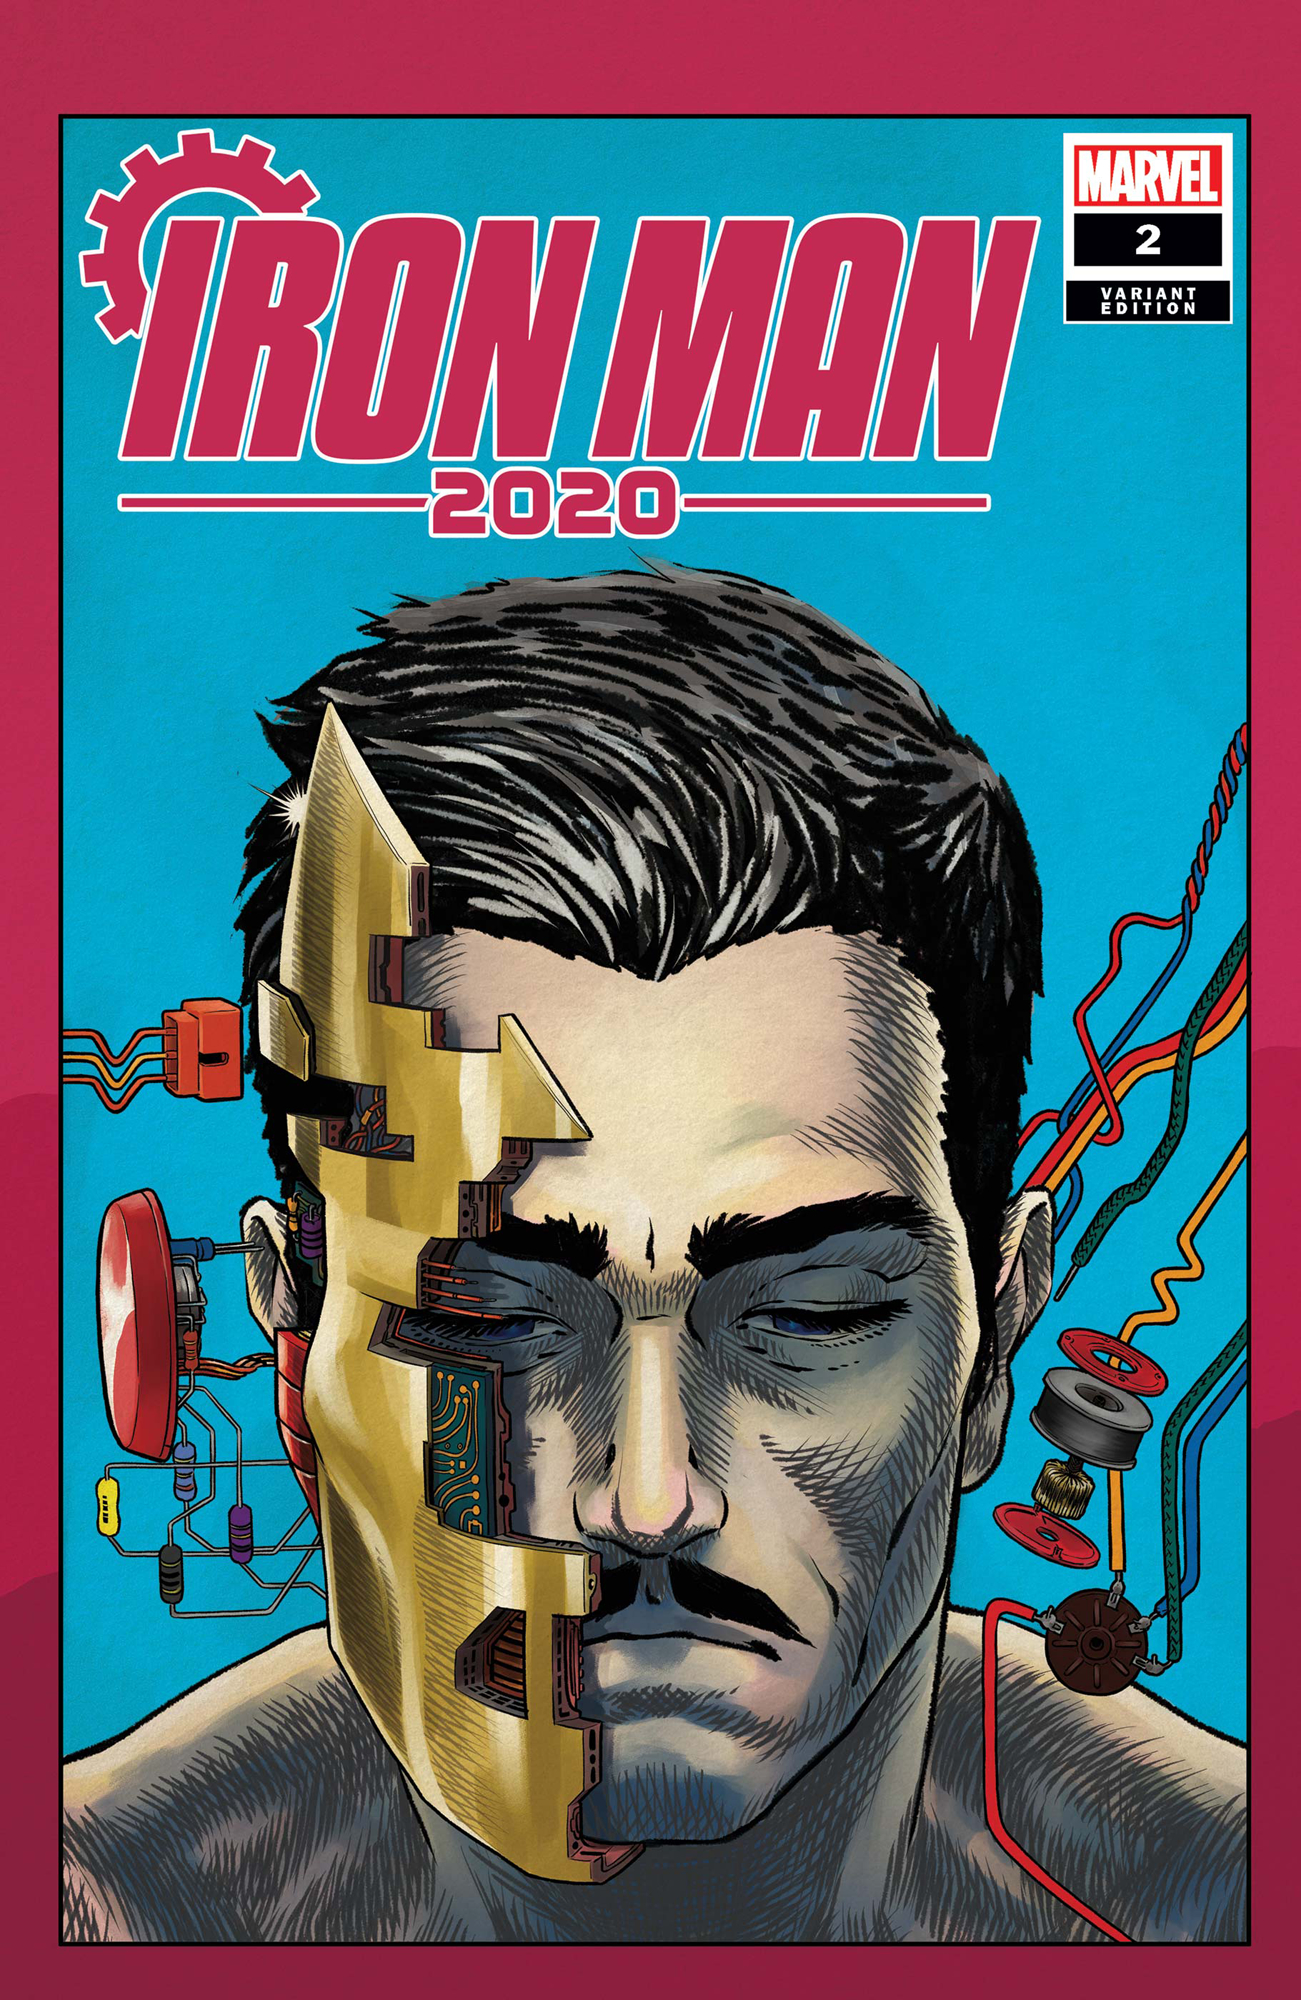 Free Comic Book Day 2020 List.Dec190818 Iron Man 2020 2 Of 6 Superlog Heads Var